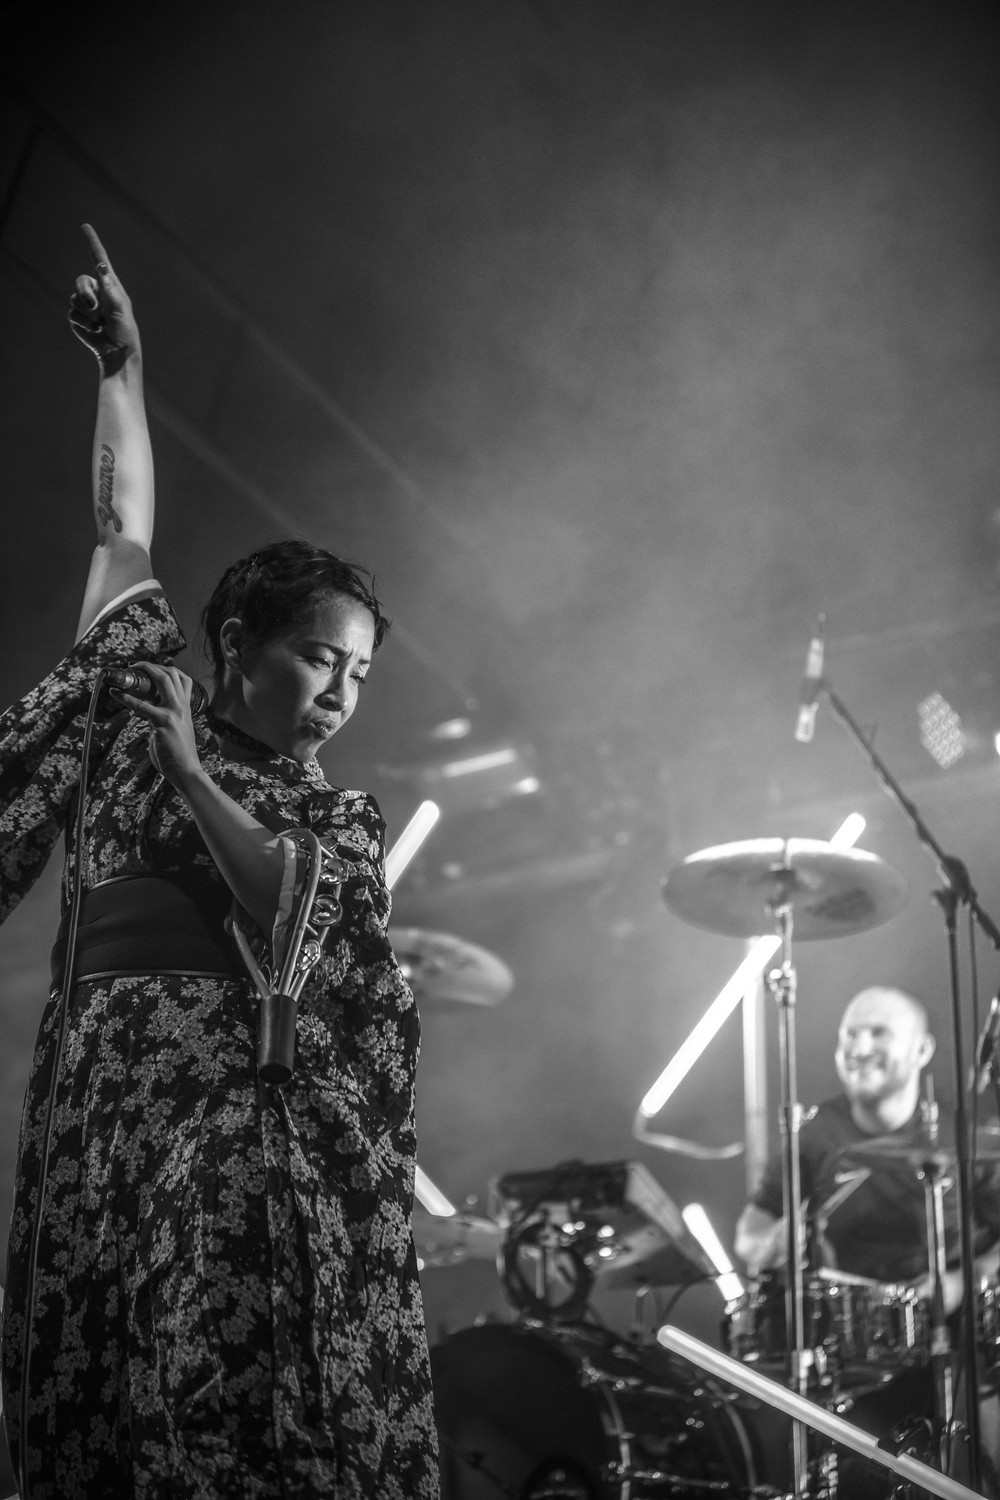 LittleDragon_LanewayBrisbane_31January2015_MiaForrest_LittleDragon_LanewayBrisbane_31January2015_MiaForrest_104A4348.jpg